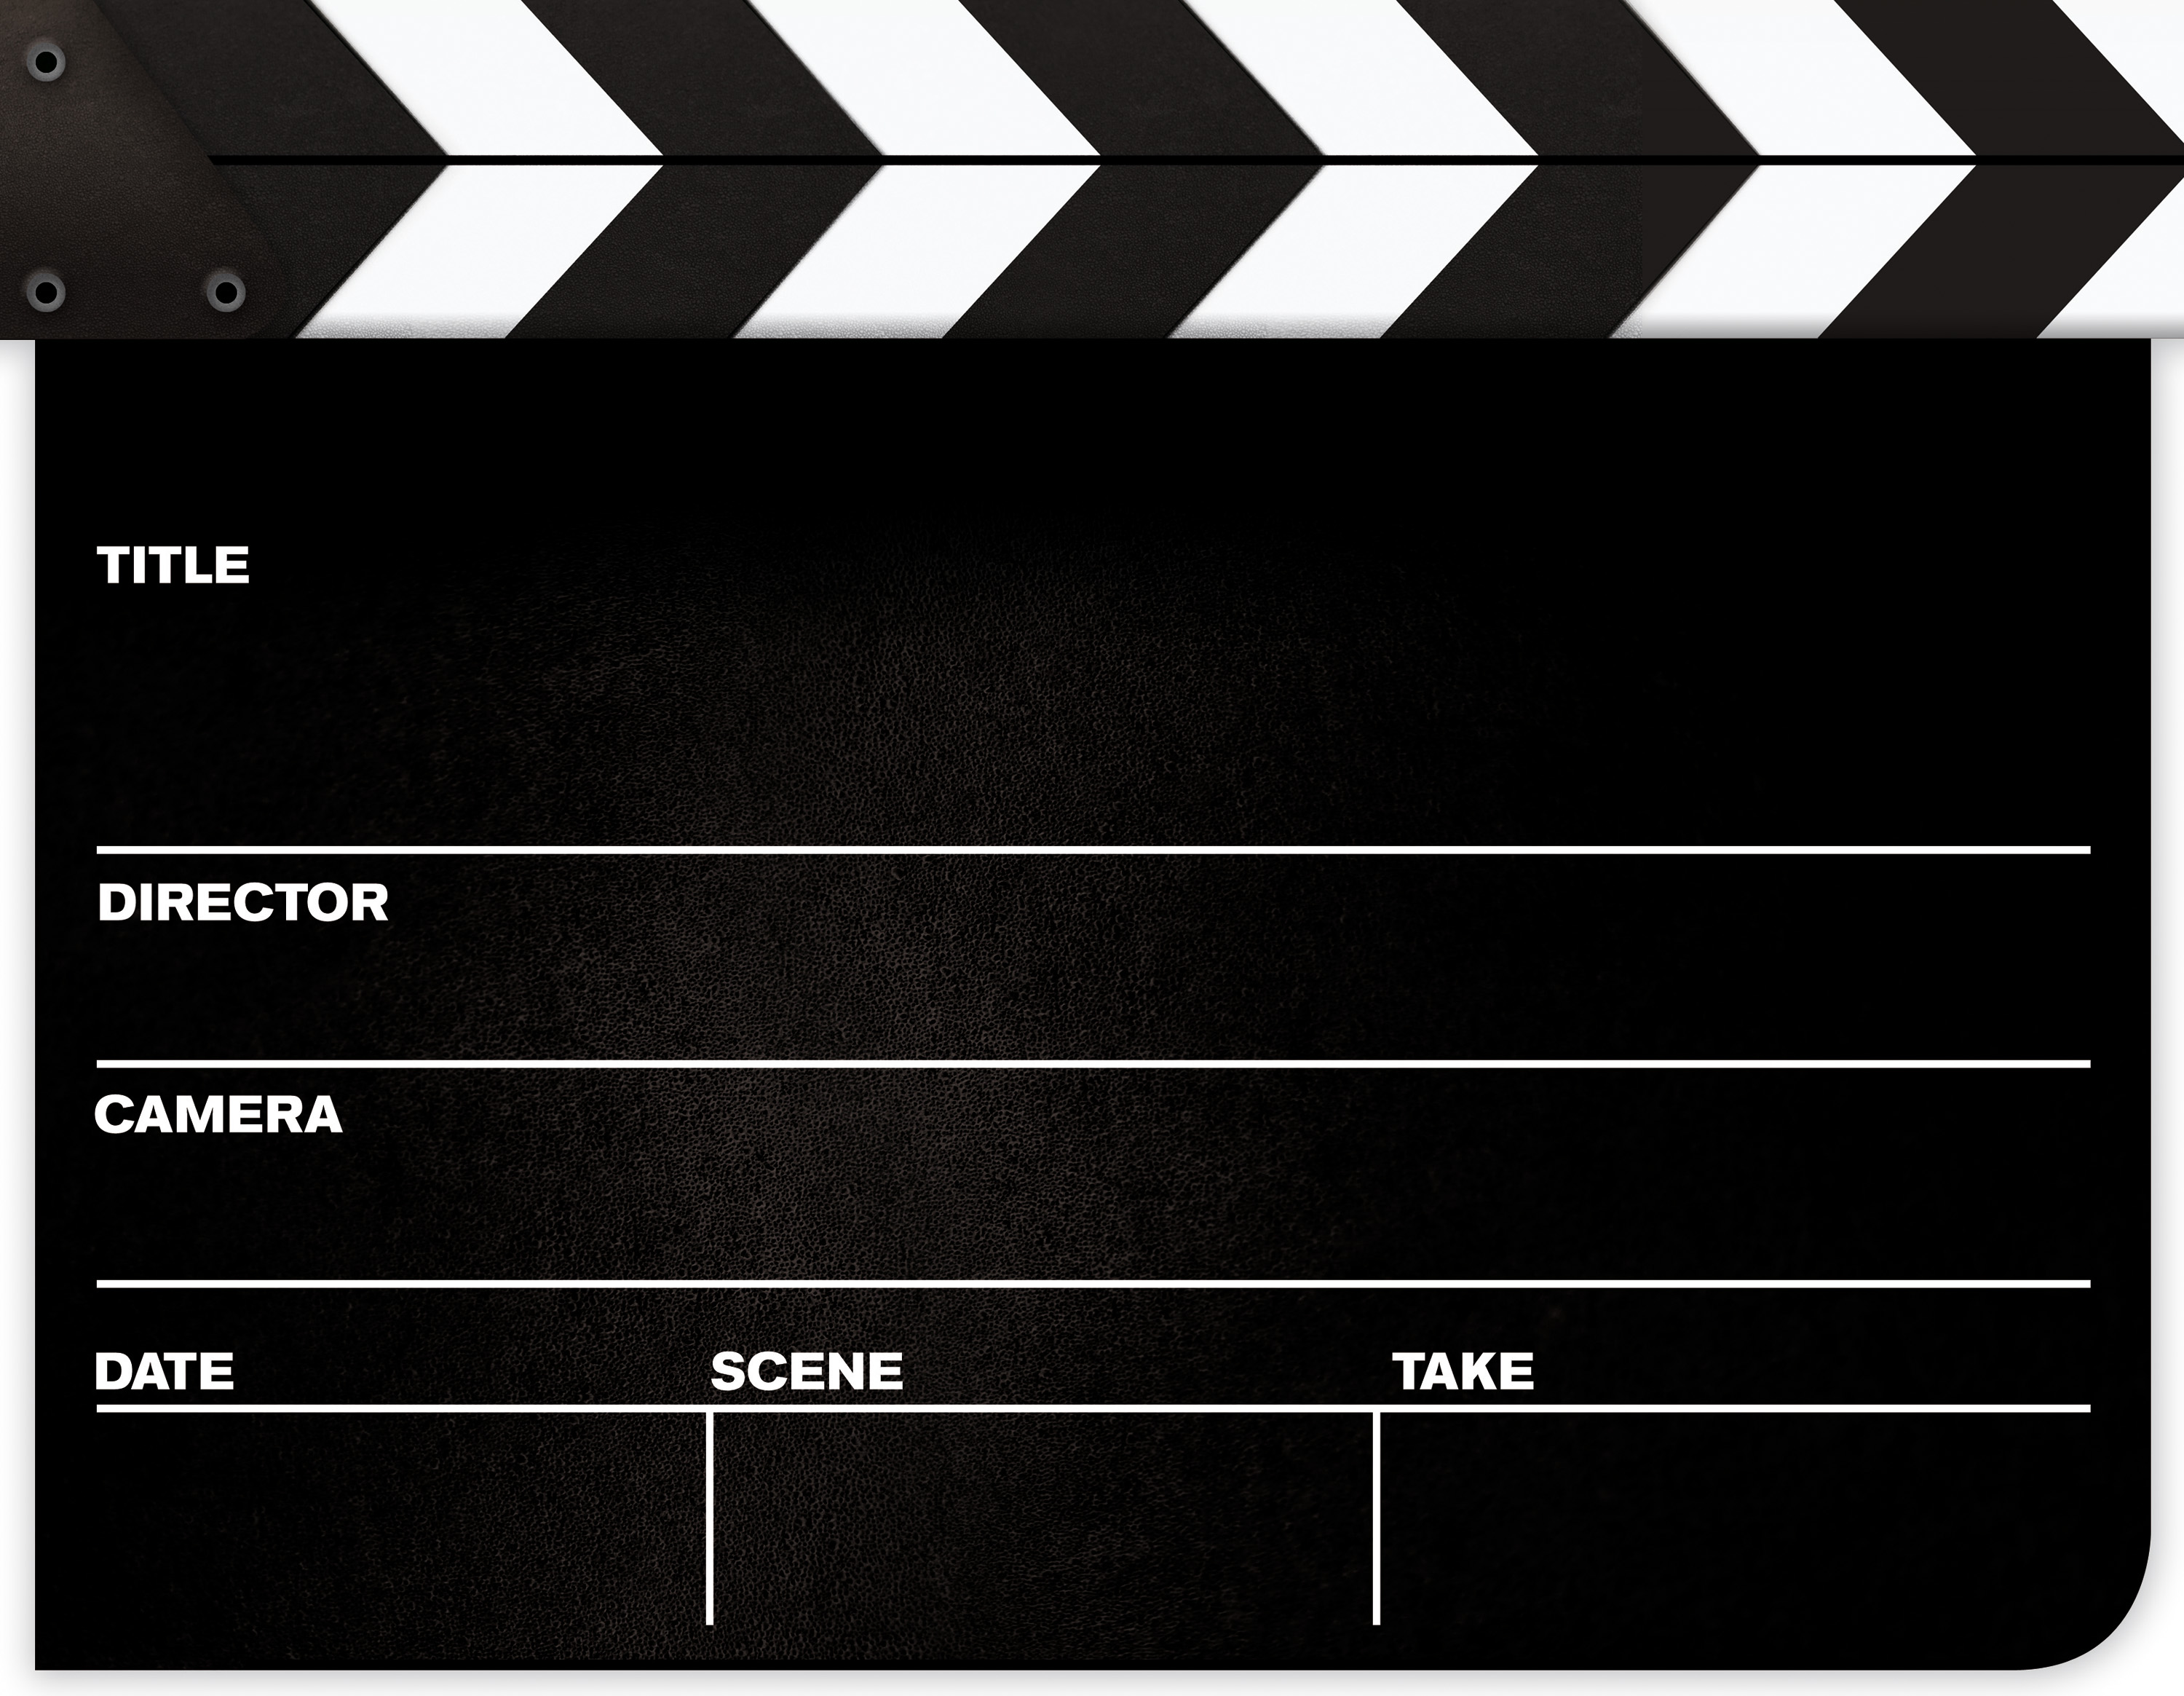 3000x2329 Image Of Clapboard Clipart 6 Movie Reel Clip Art Clipartoons